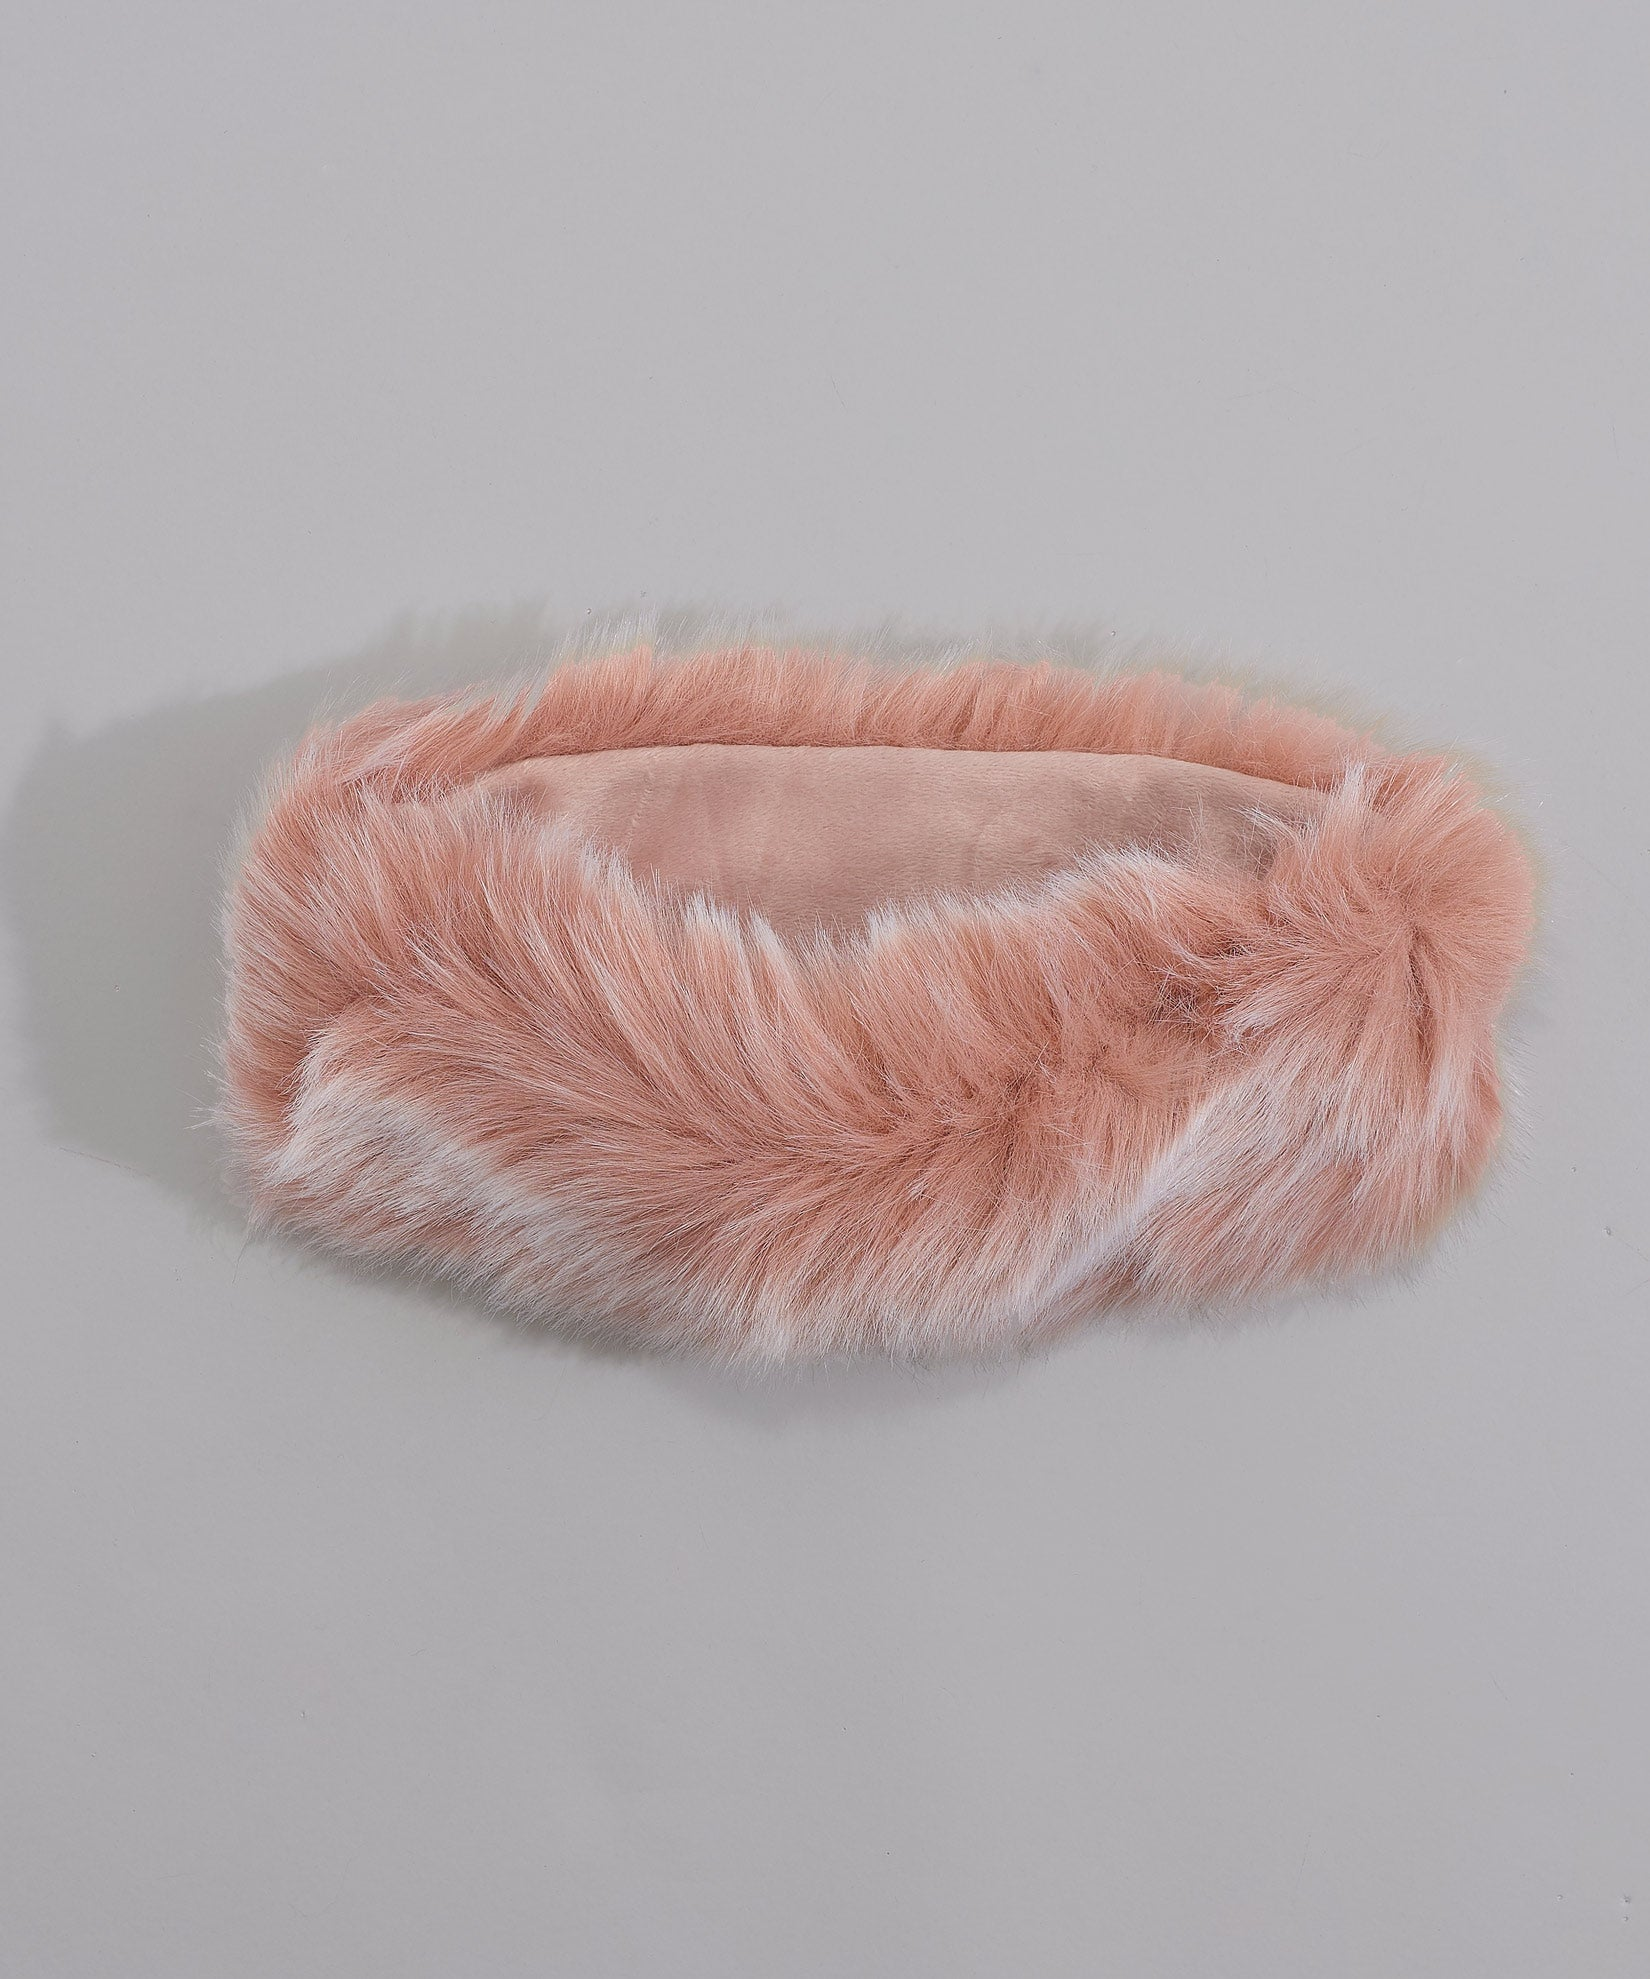 Blush - Multi Use Faux Fur Neck Ring Headband